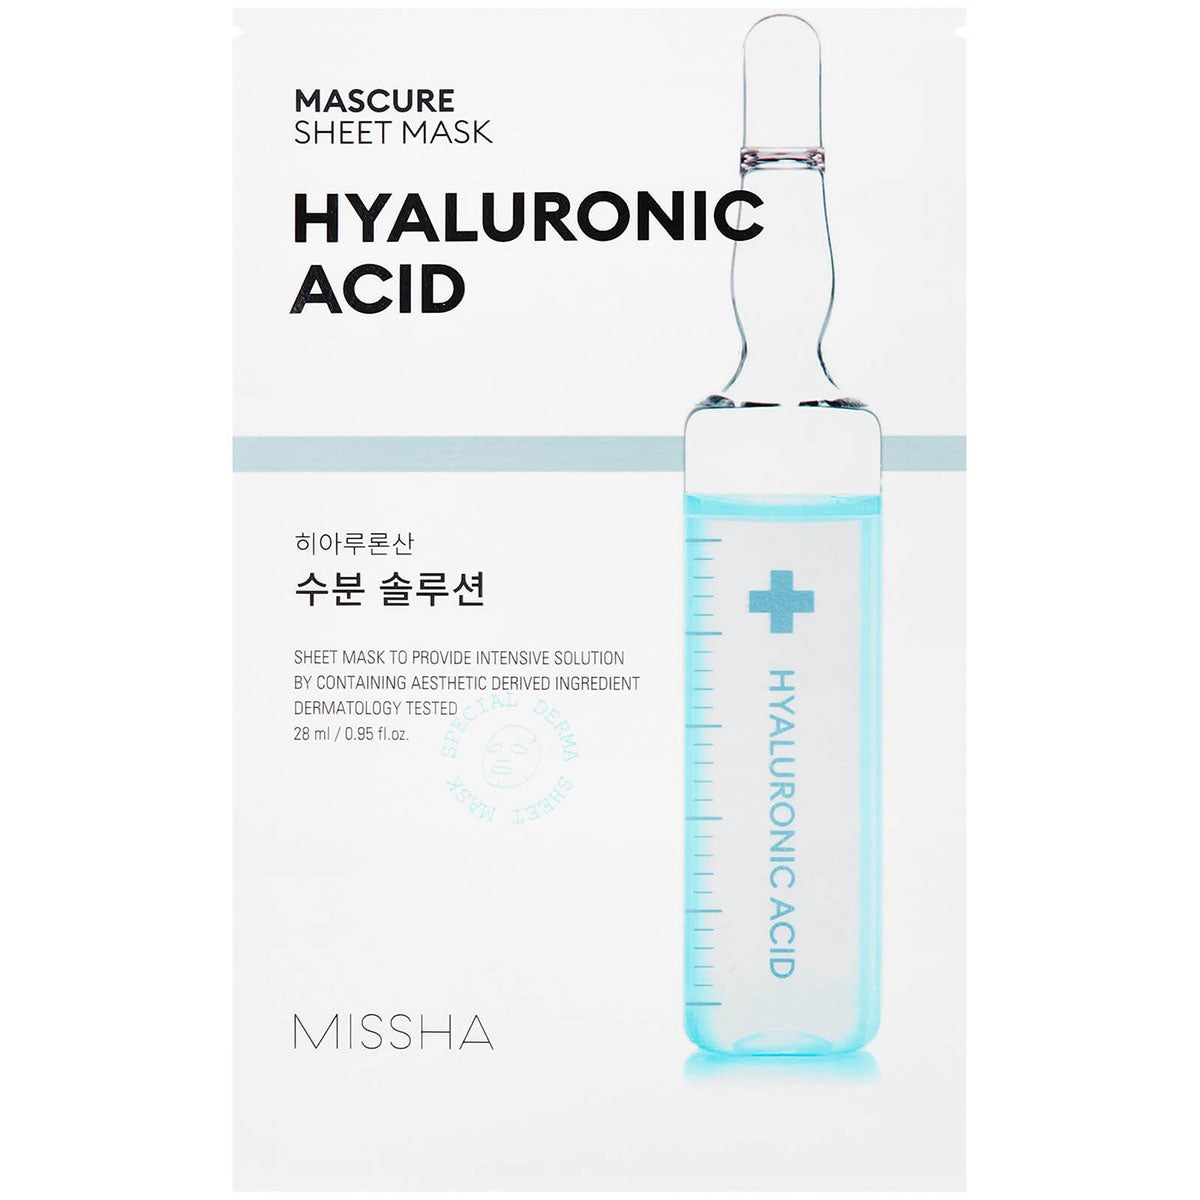 MISSHA Mascure Hydra Solution Sheet Mask